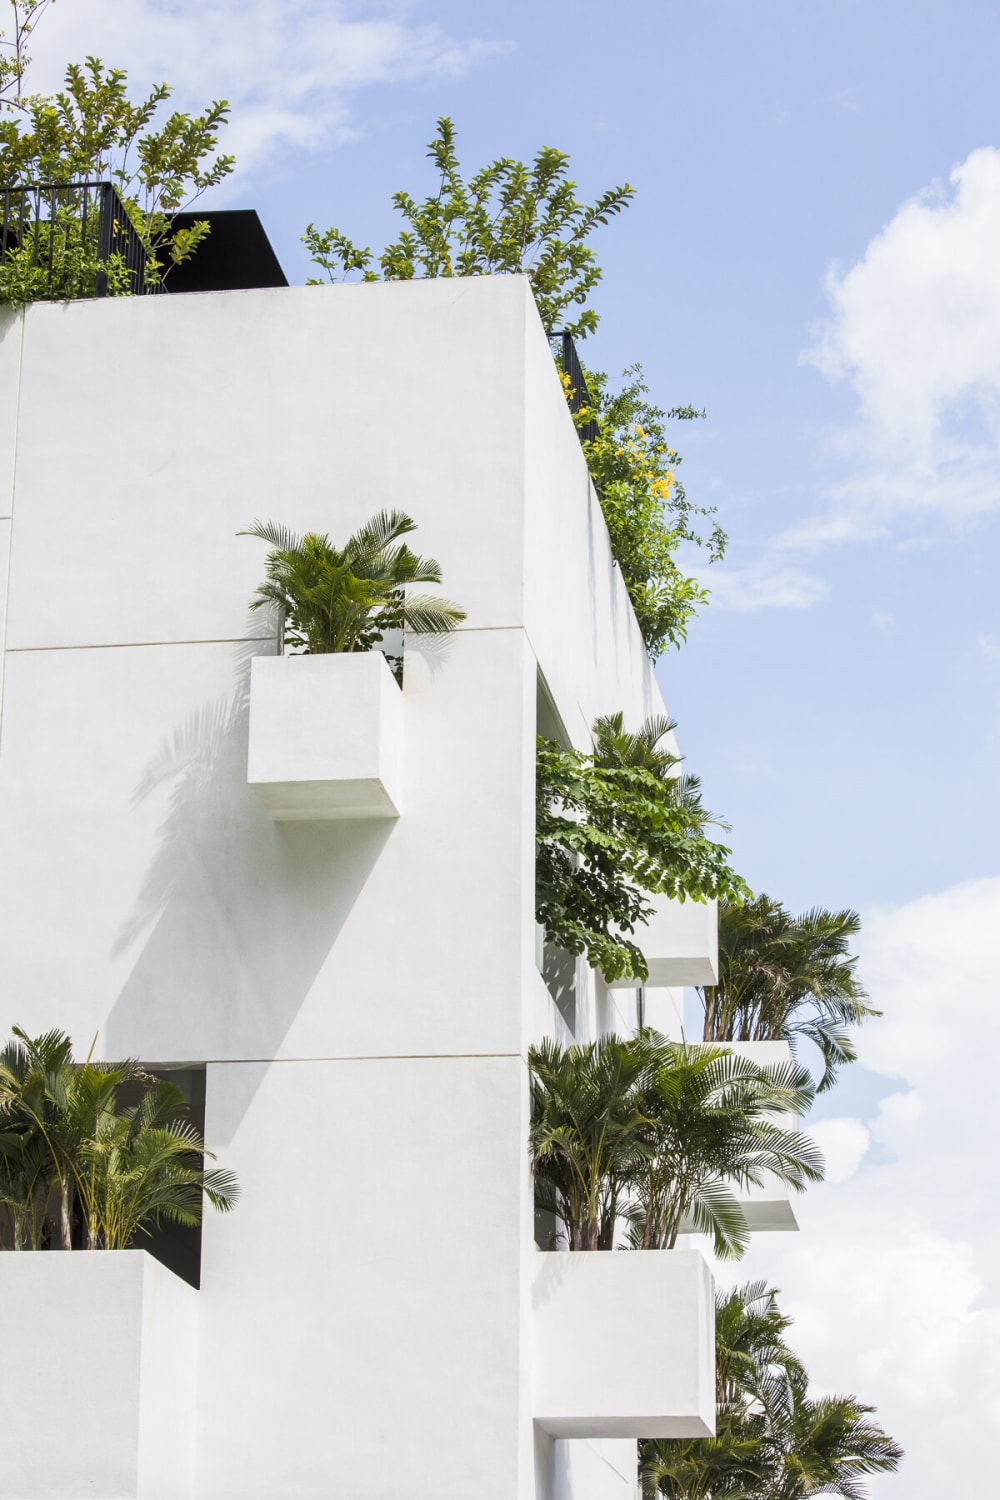 """Boxy building with protruding balconies filled with plants.<span class=""""sr-only""""> (opened in a new window/tab)</span>"""